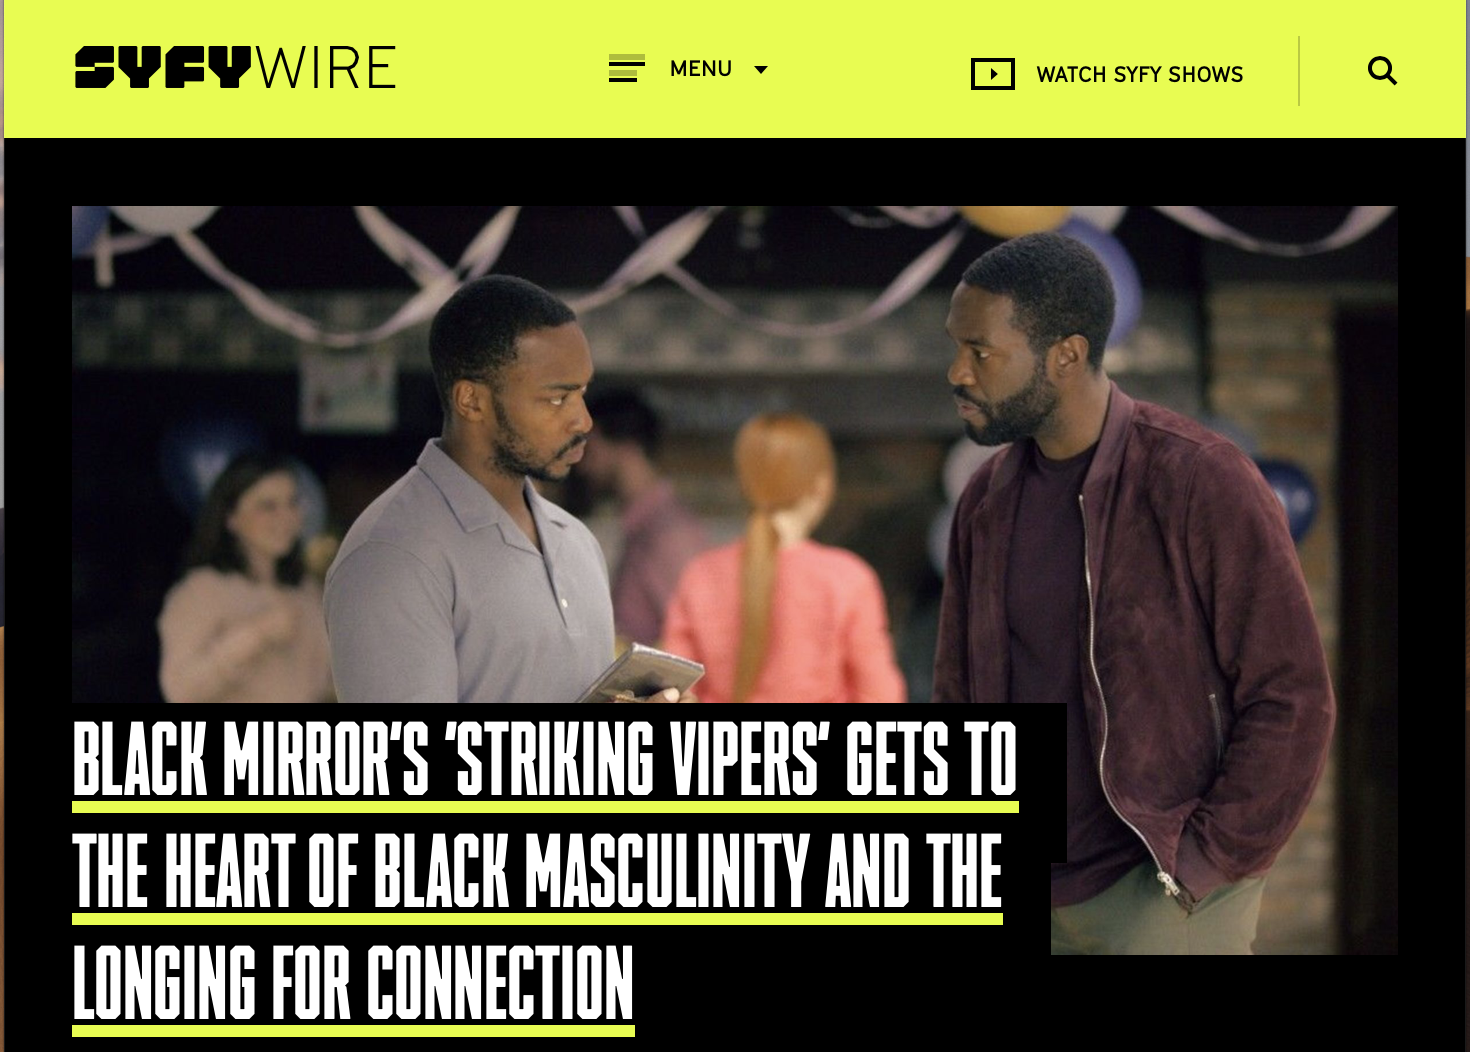 SYFYWIRE / BLACK MIRROR'S 'STRIKING VIPERS' GETS TO THE HEART OF BLACK MASCULINITY AND THE LONGING FOR CONNECTION - In past seasons, the Netflix series focused on the love women of color have, and in the recently released fifth season, Black Mirror has decided to introduce another queer storyline, though viewers might not have been expecting that when they first hit play.